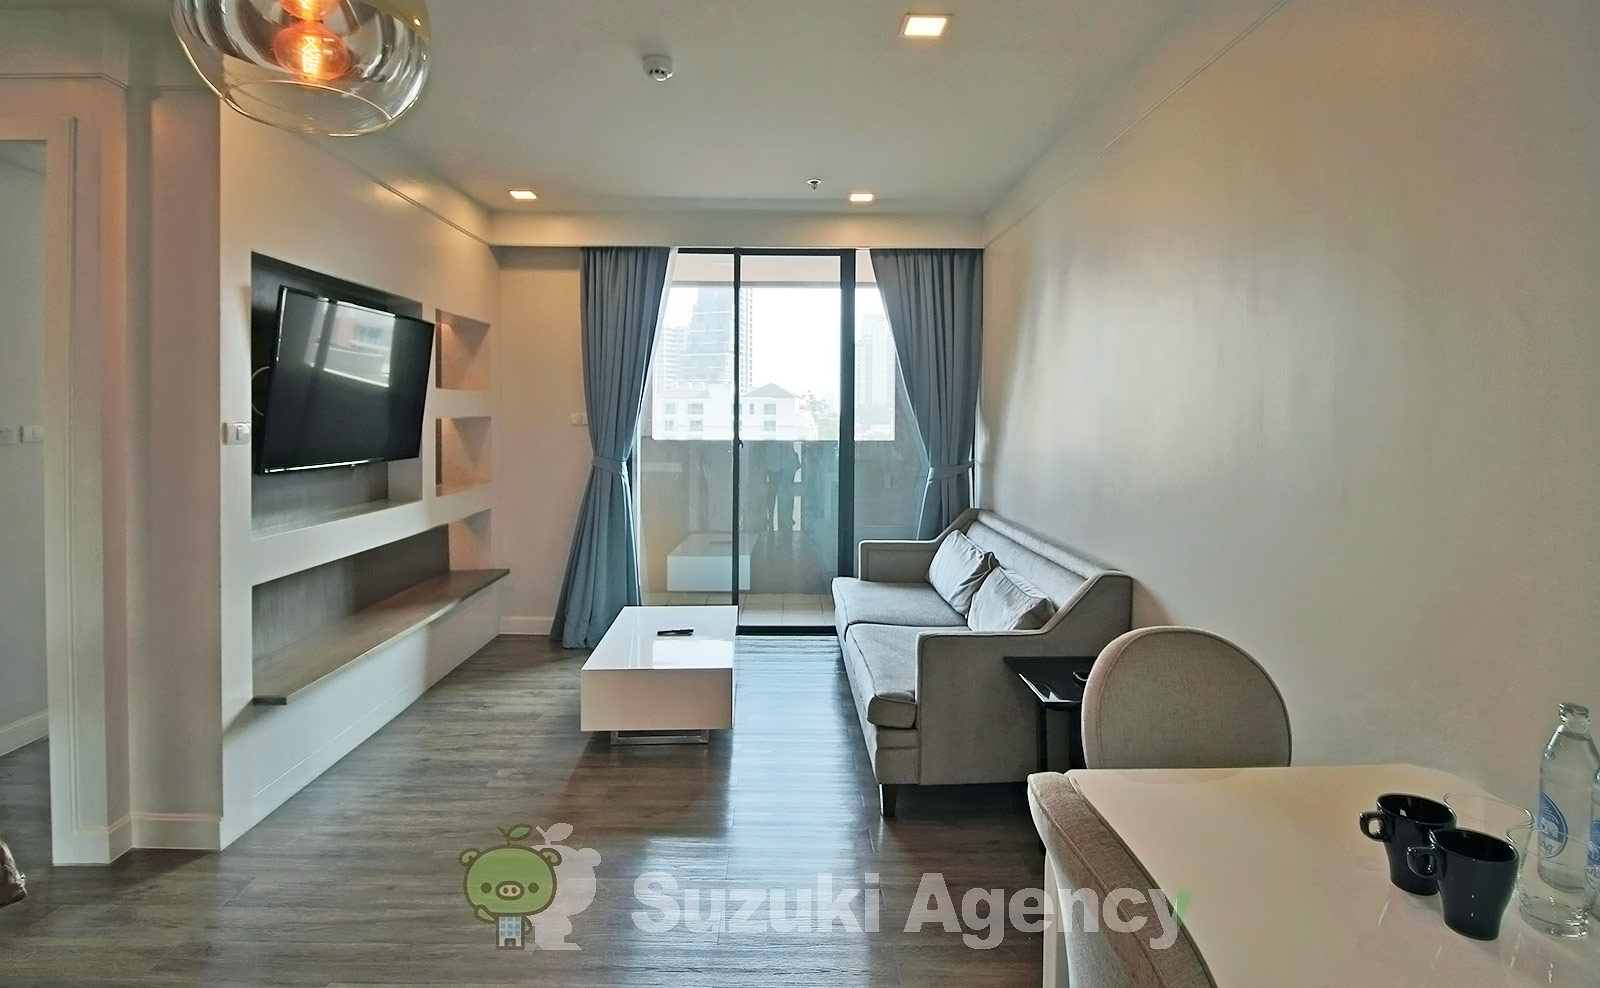 METROPOLE Residence (旧 Parc 39):1Bed Room Photos No.1